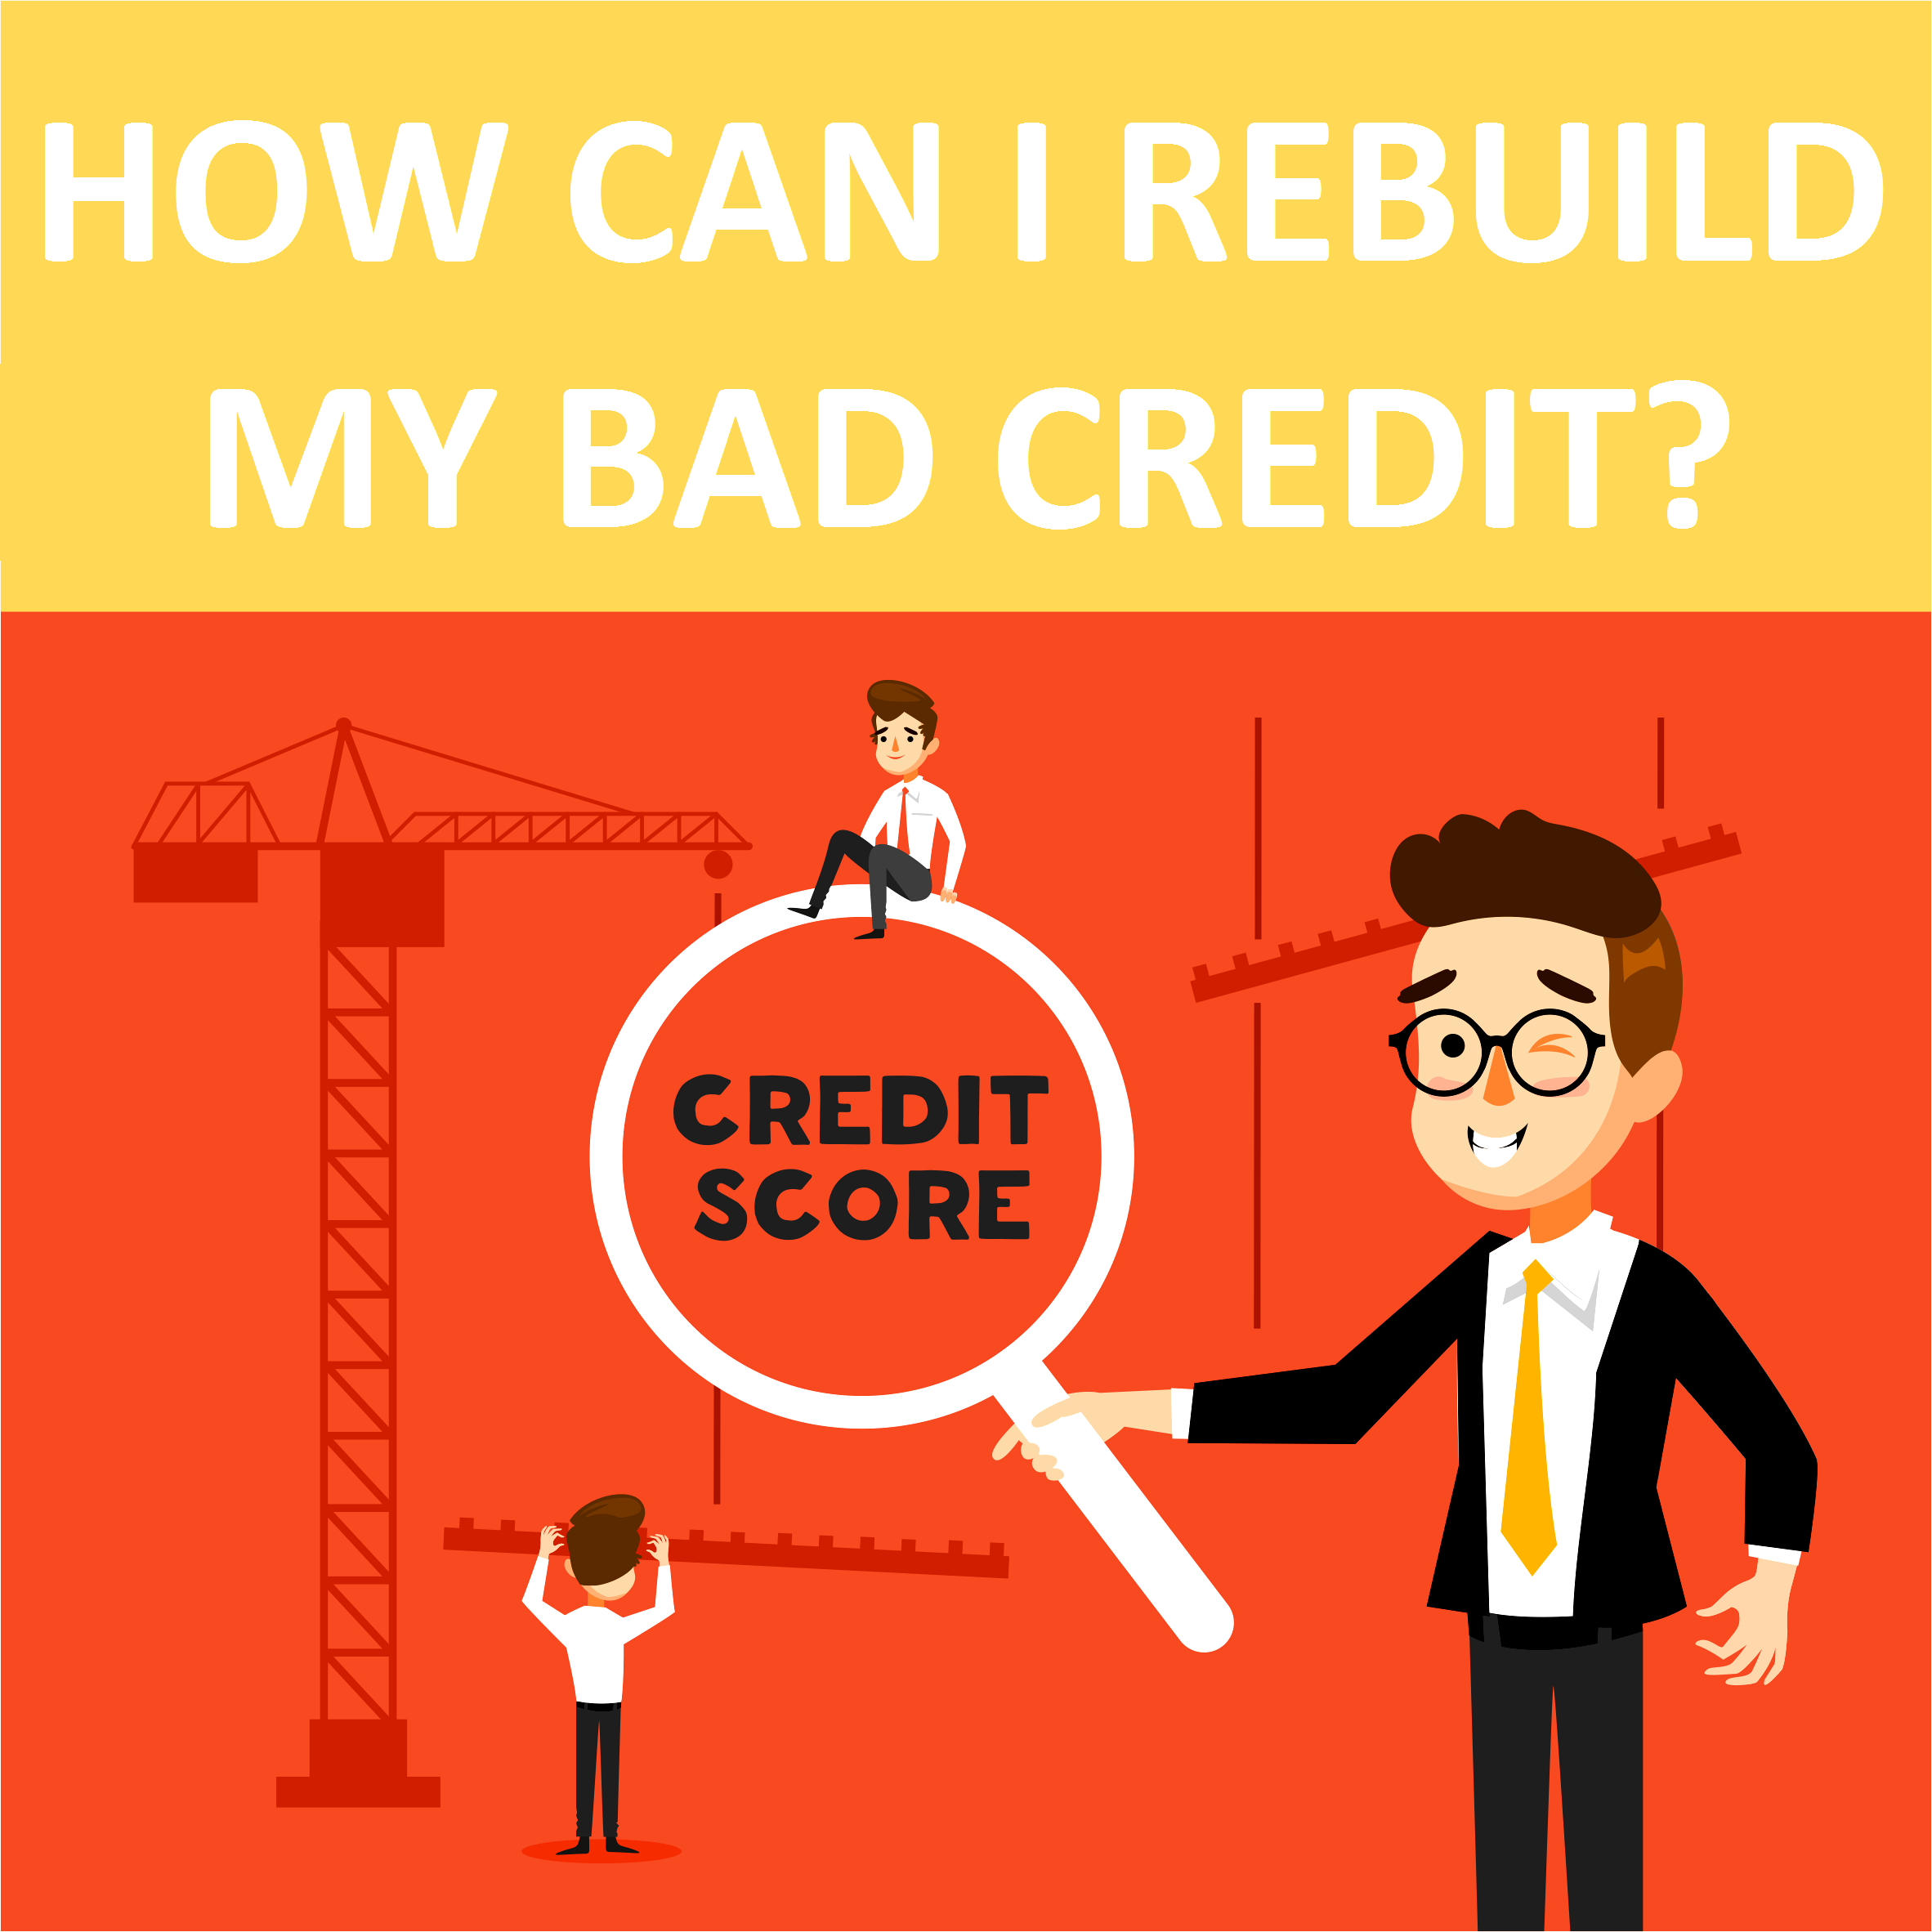 How Can I Rebuild My Bad Credit?